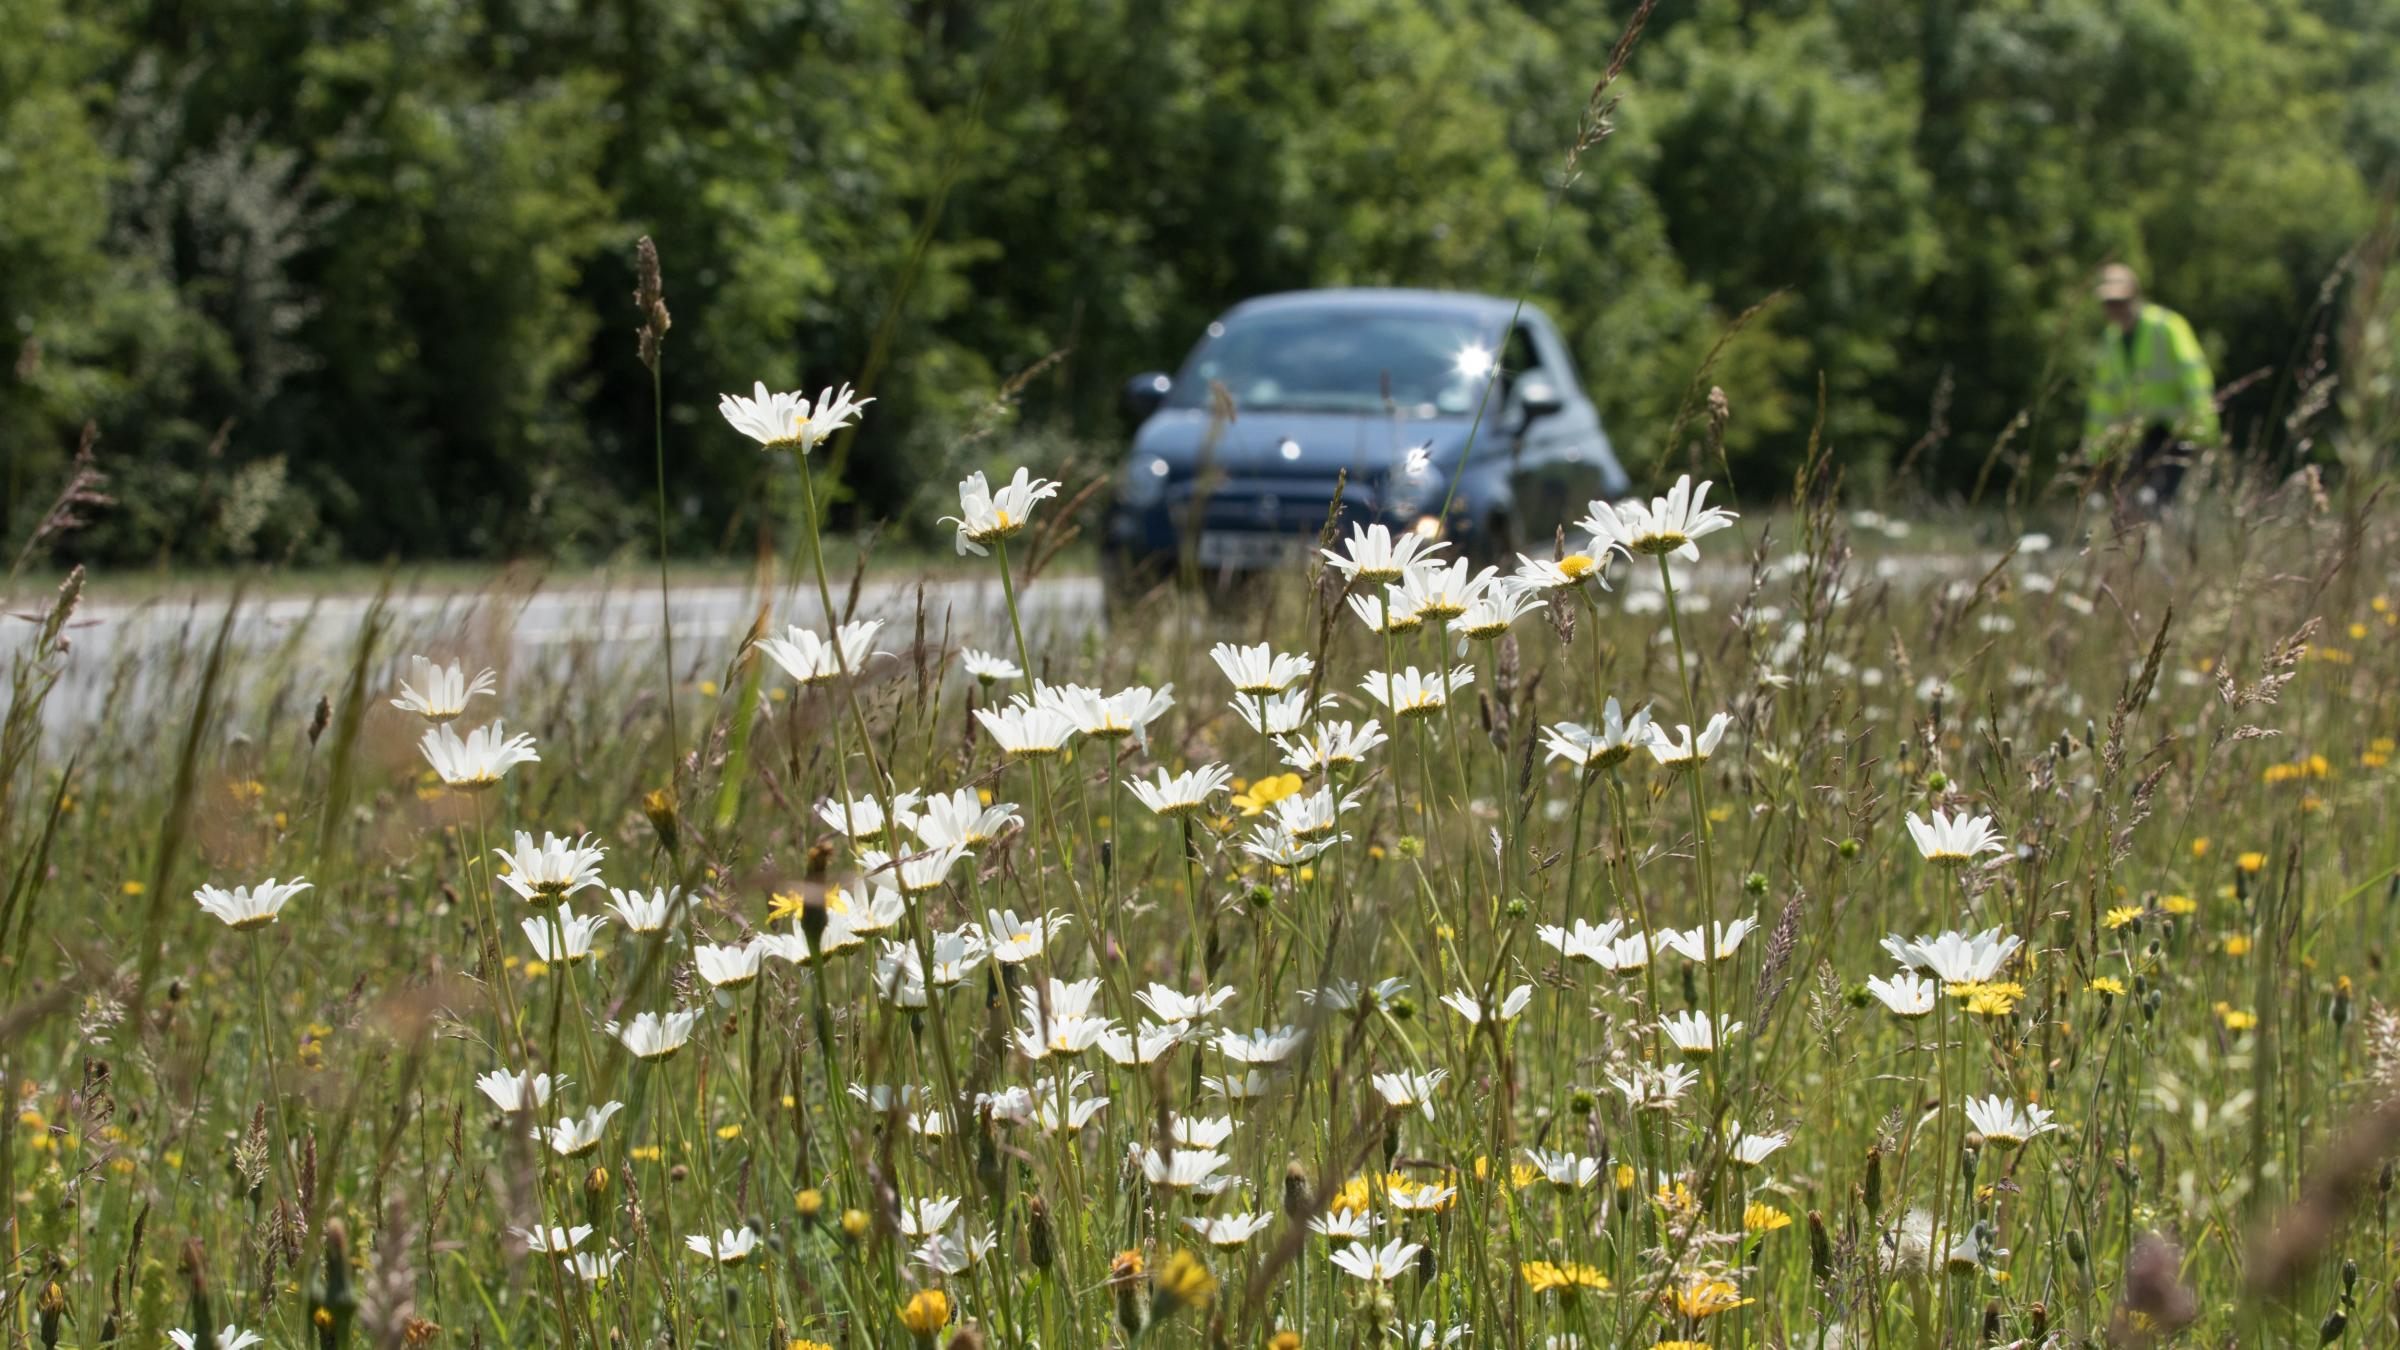 Playground thuggery' as nettles and brambles crowd out flowers on roadsides